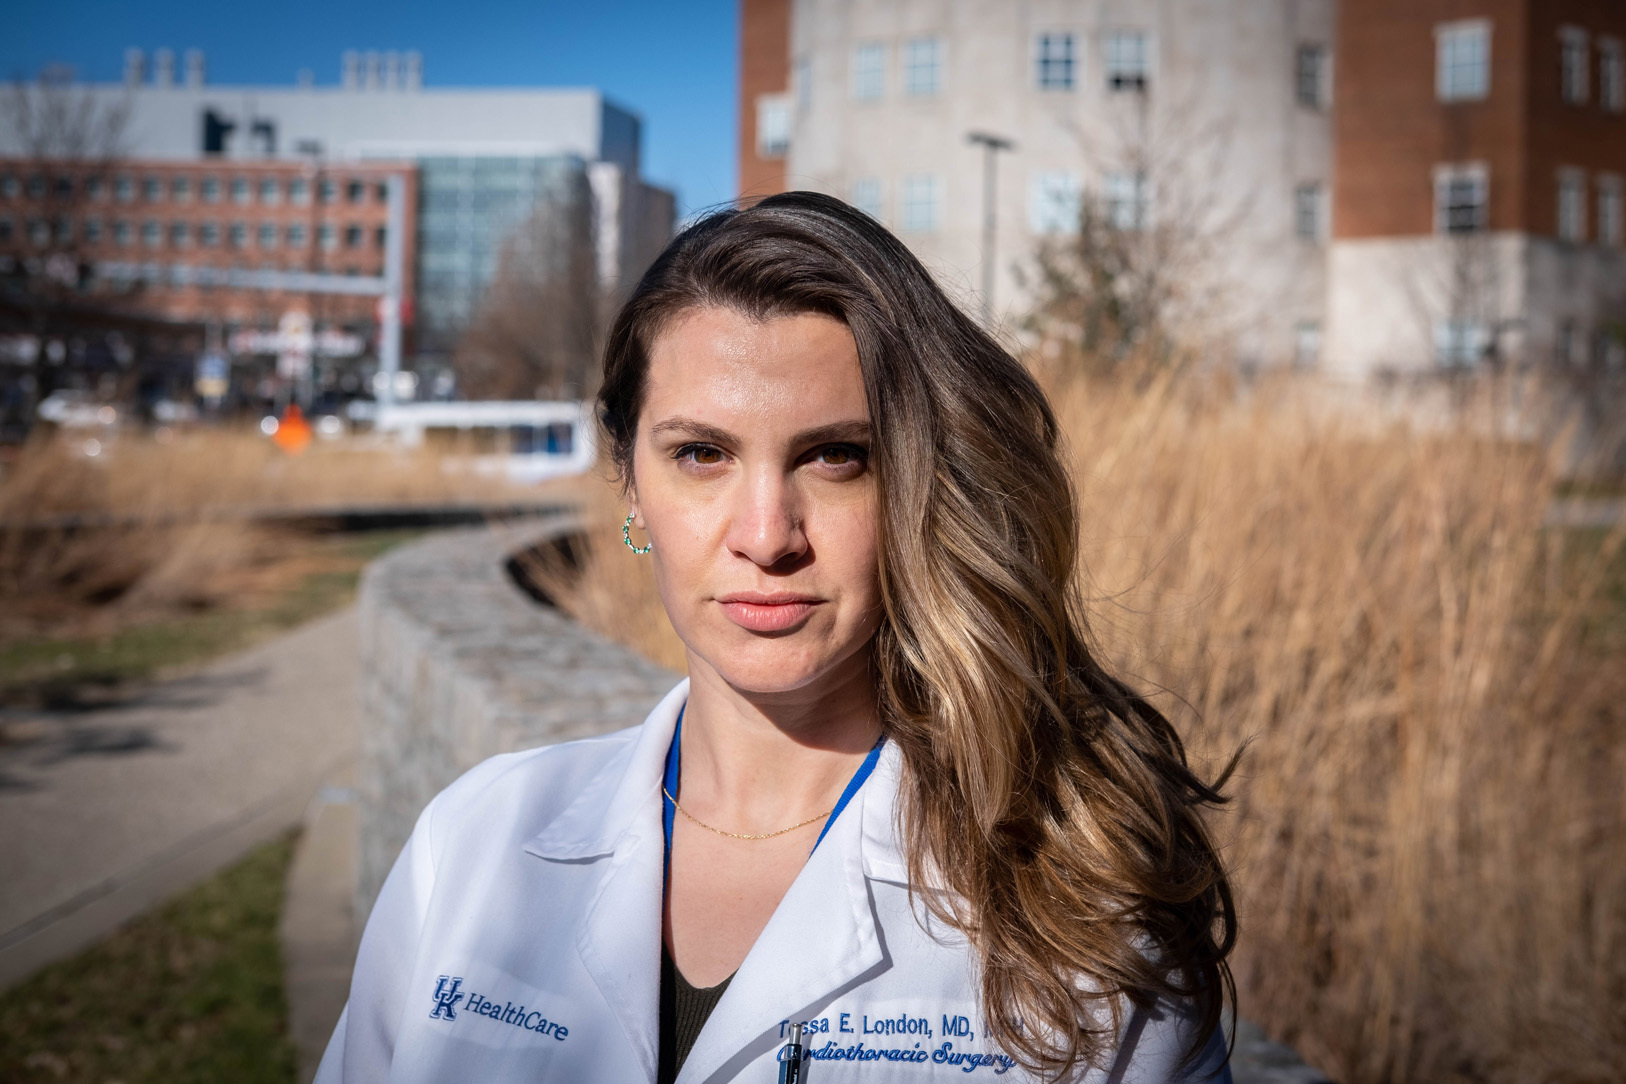 A portrait of Dr. London, standing outside the hospital in a white coat and a blue shirt. Her hair is loose and pushed to one side, and she is wearing a small gold chain and green hoop earrings.